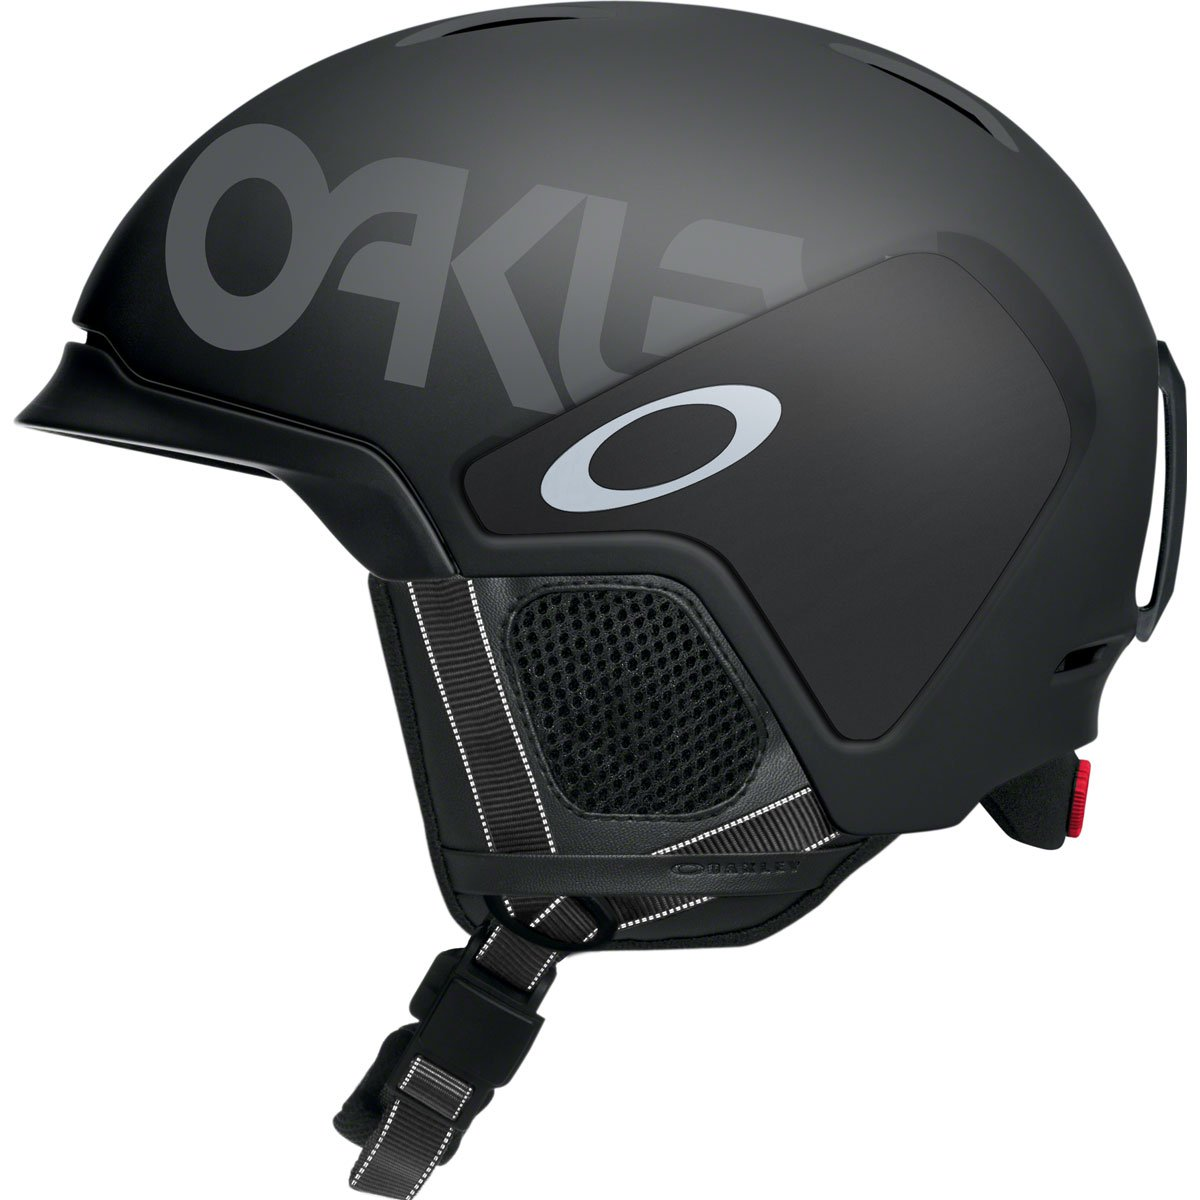 Oakley Mod3 Factory Pilot Snow Helmet, Matte Black, Medium by Oakley